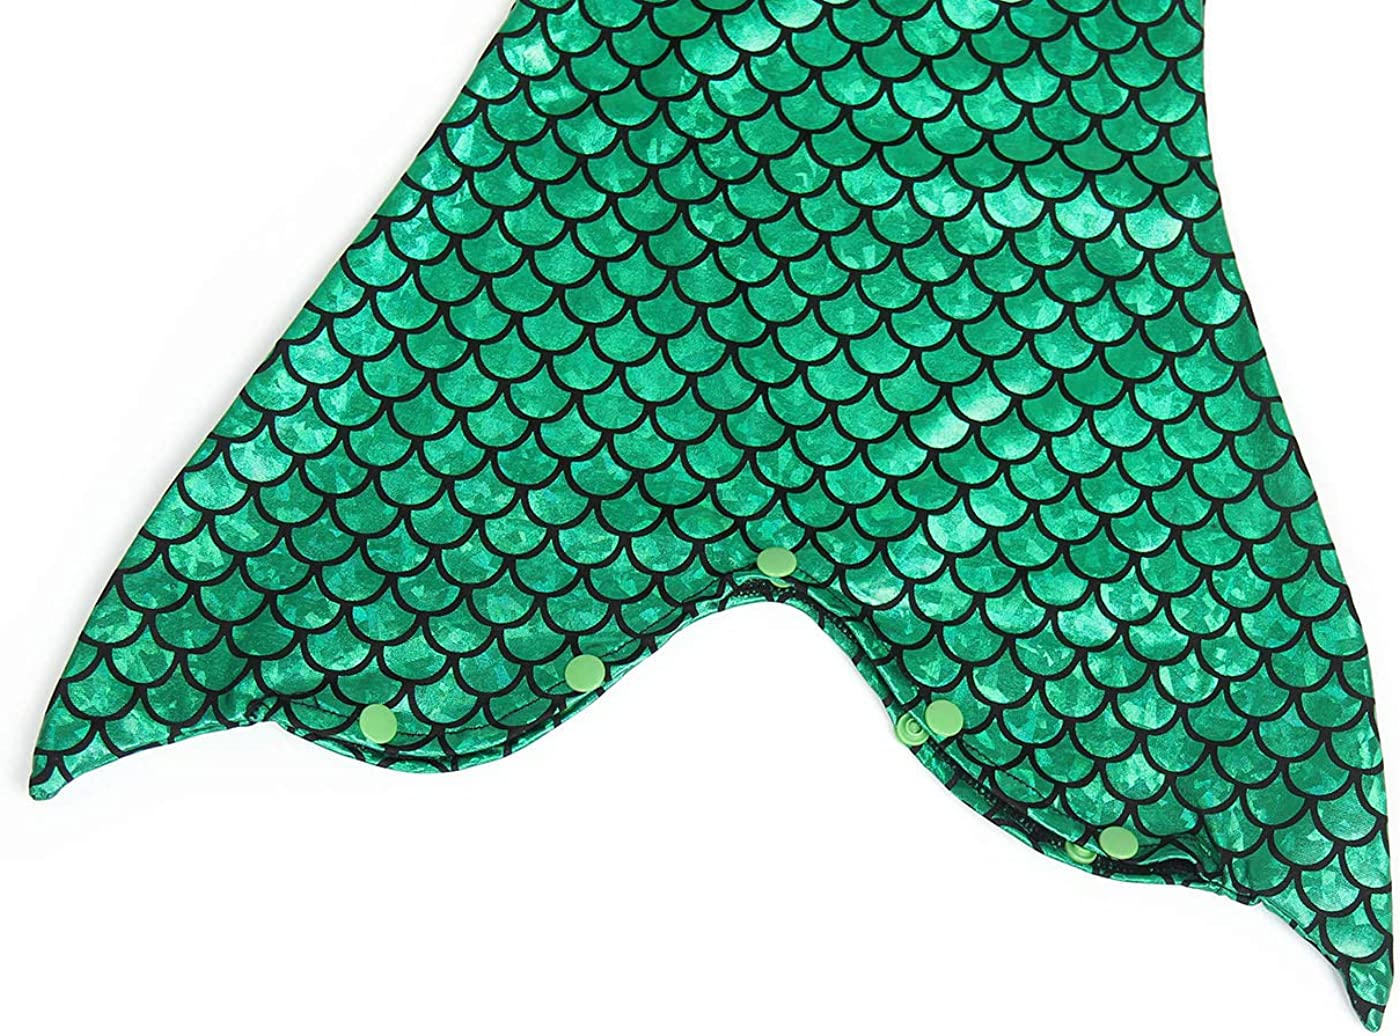 HenzWorld Mermaid Costume Dress Up Princess Romper Birthday Pool Party Holiday Swimsuit Little Kids Outfits Fish Scale